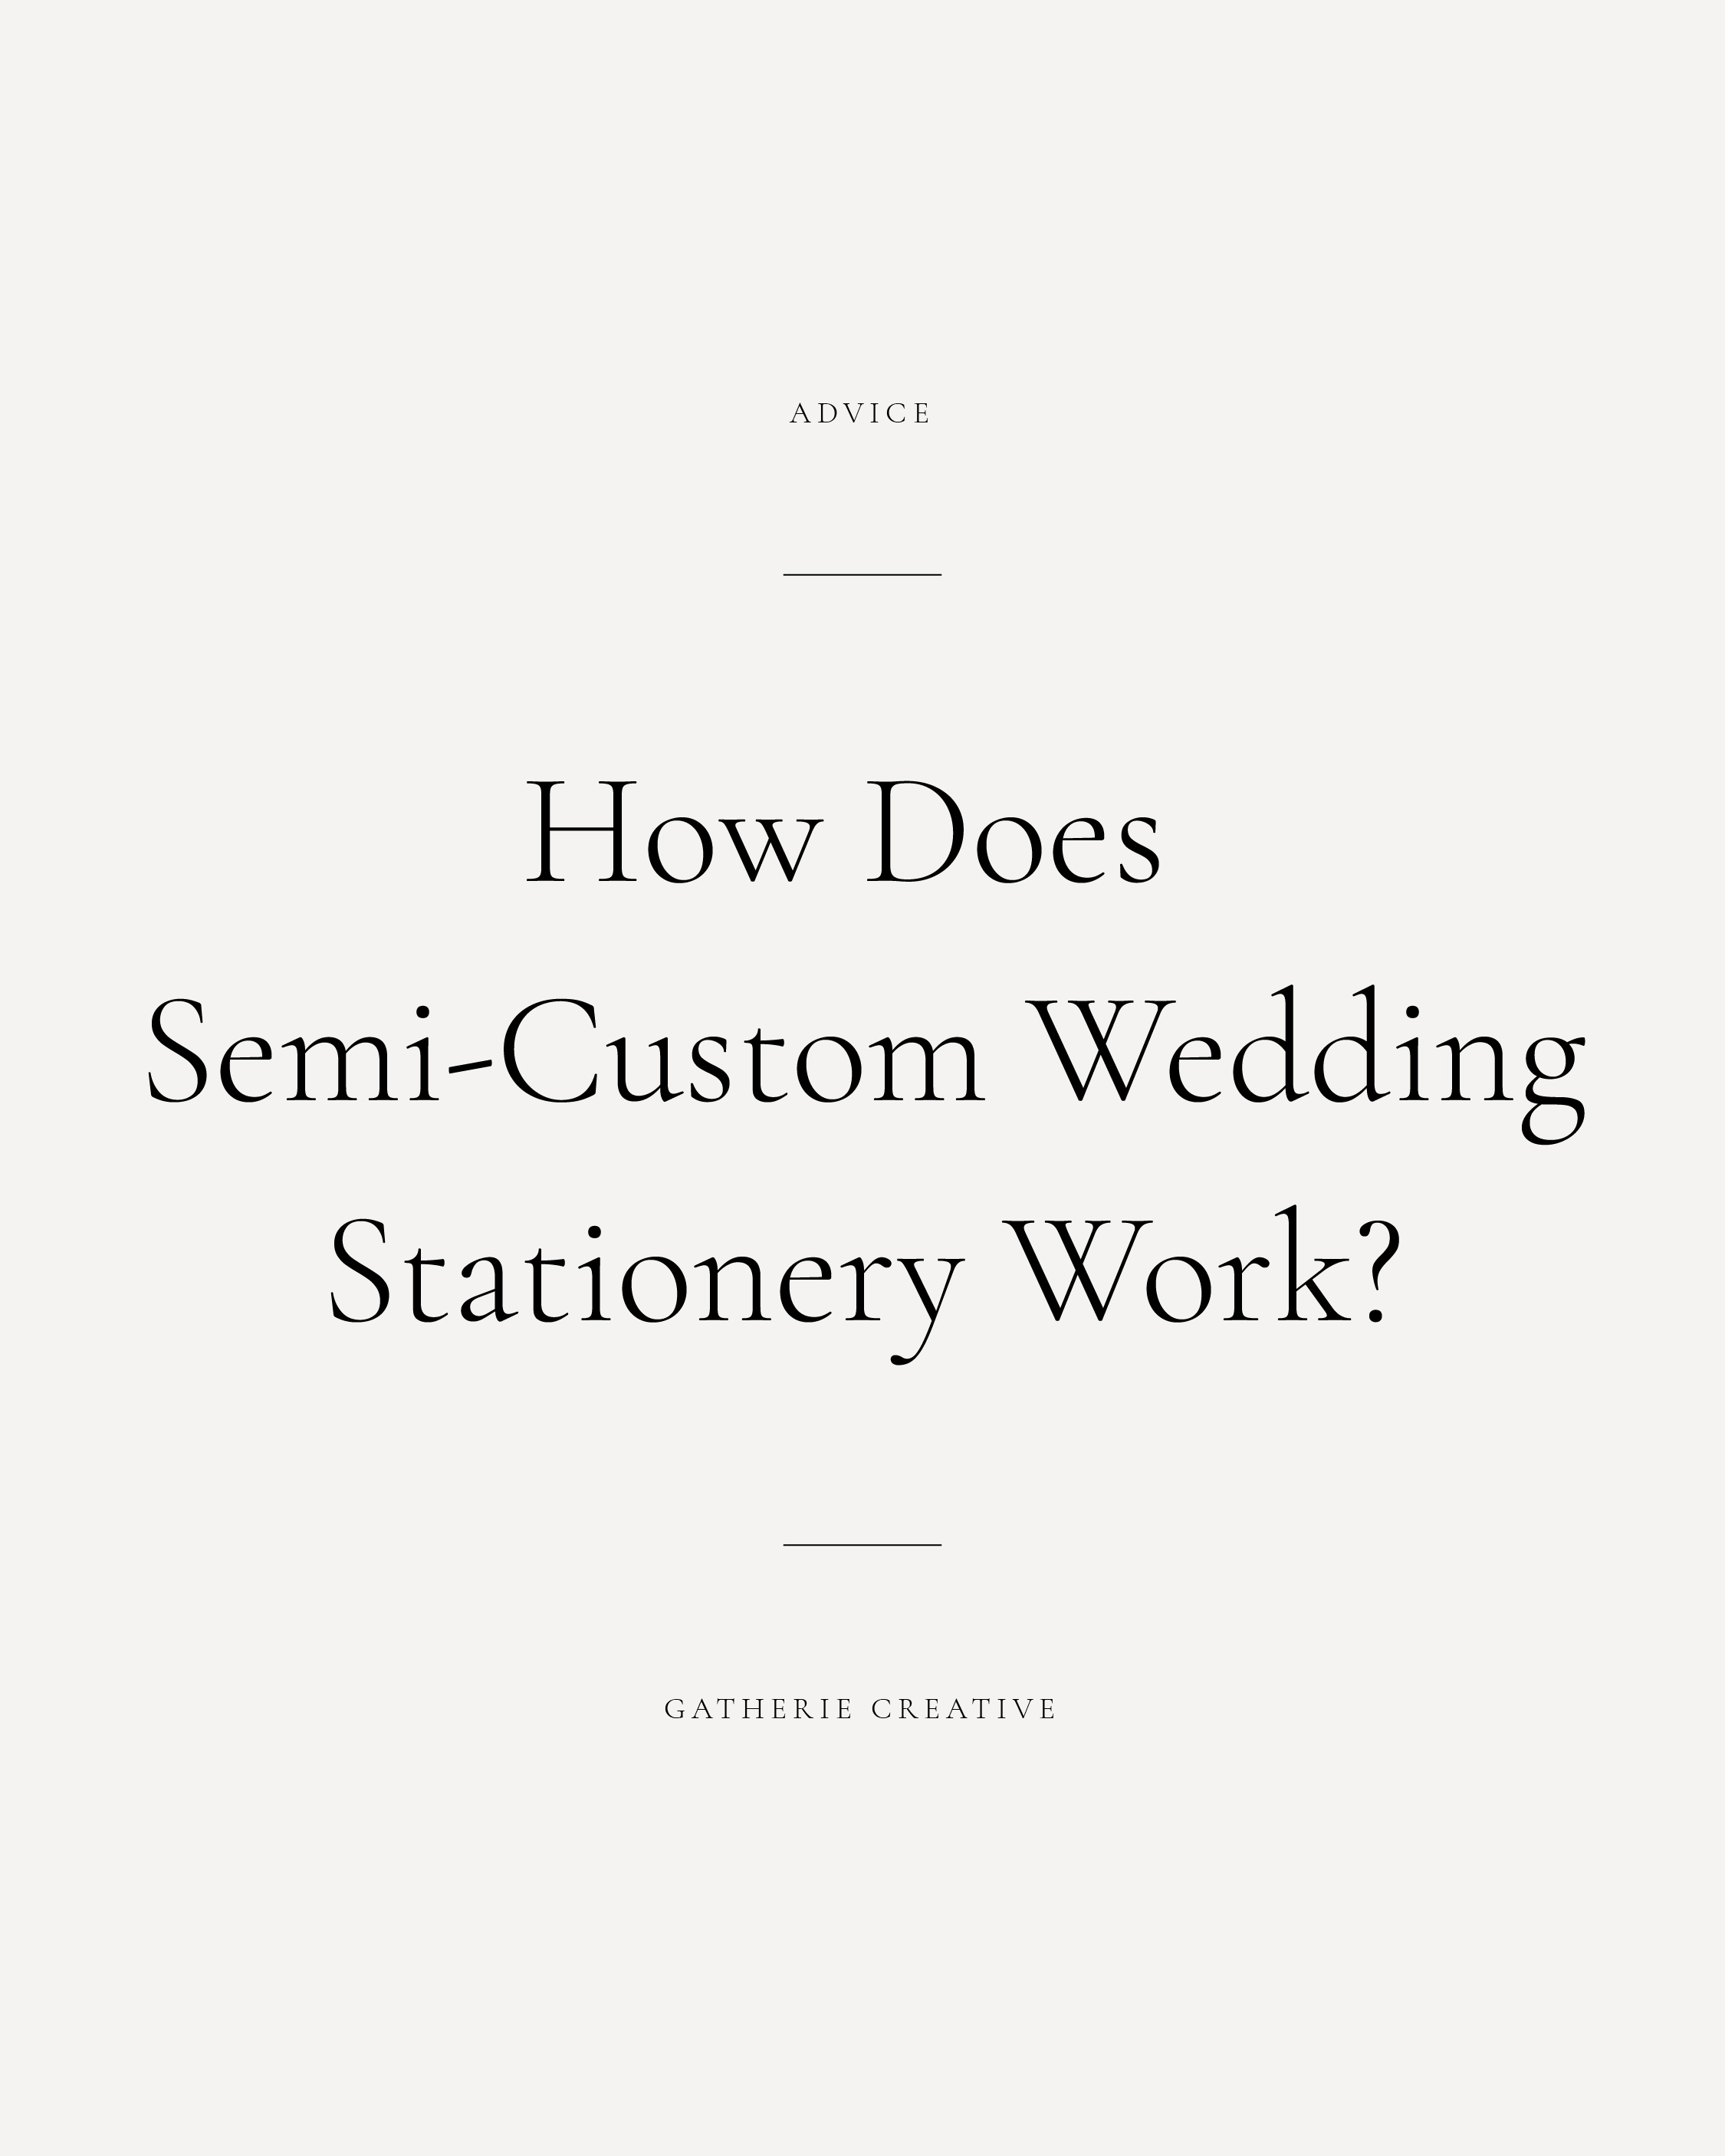 semi-custom_stationery_guide-01.jpg